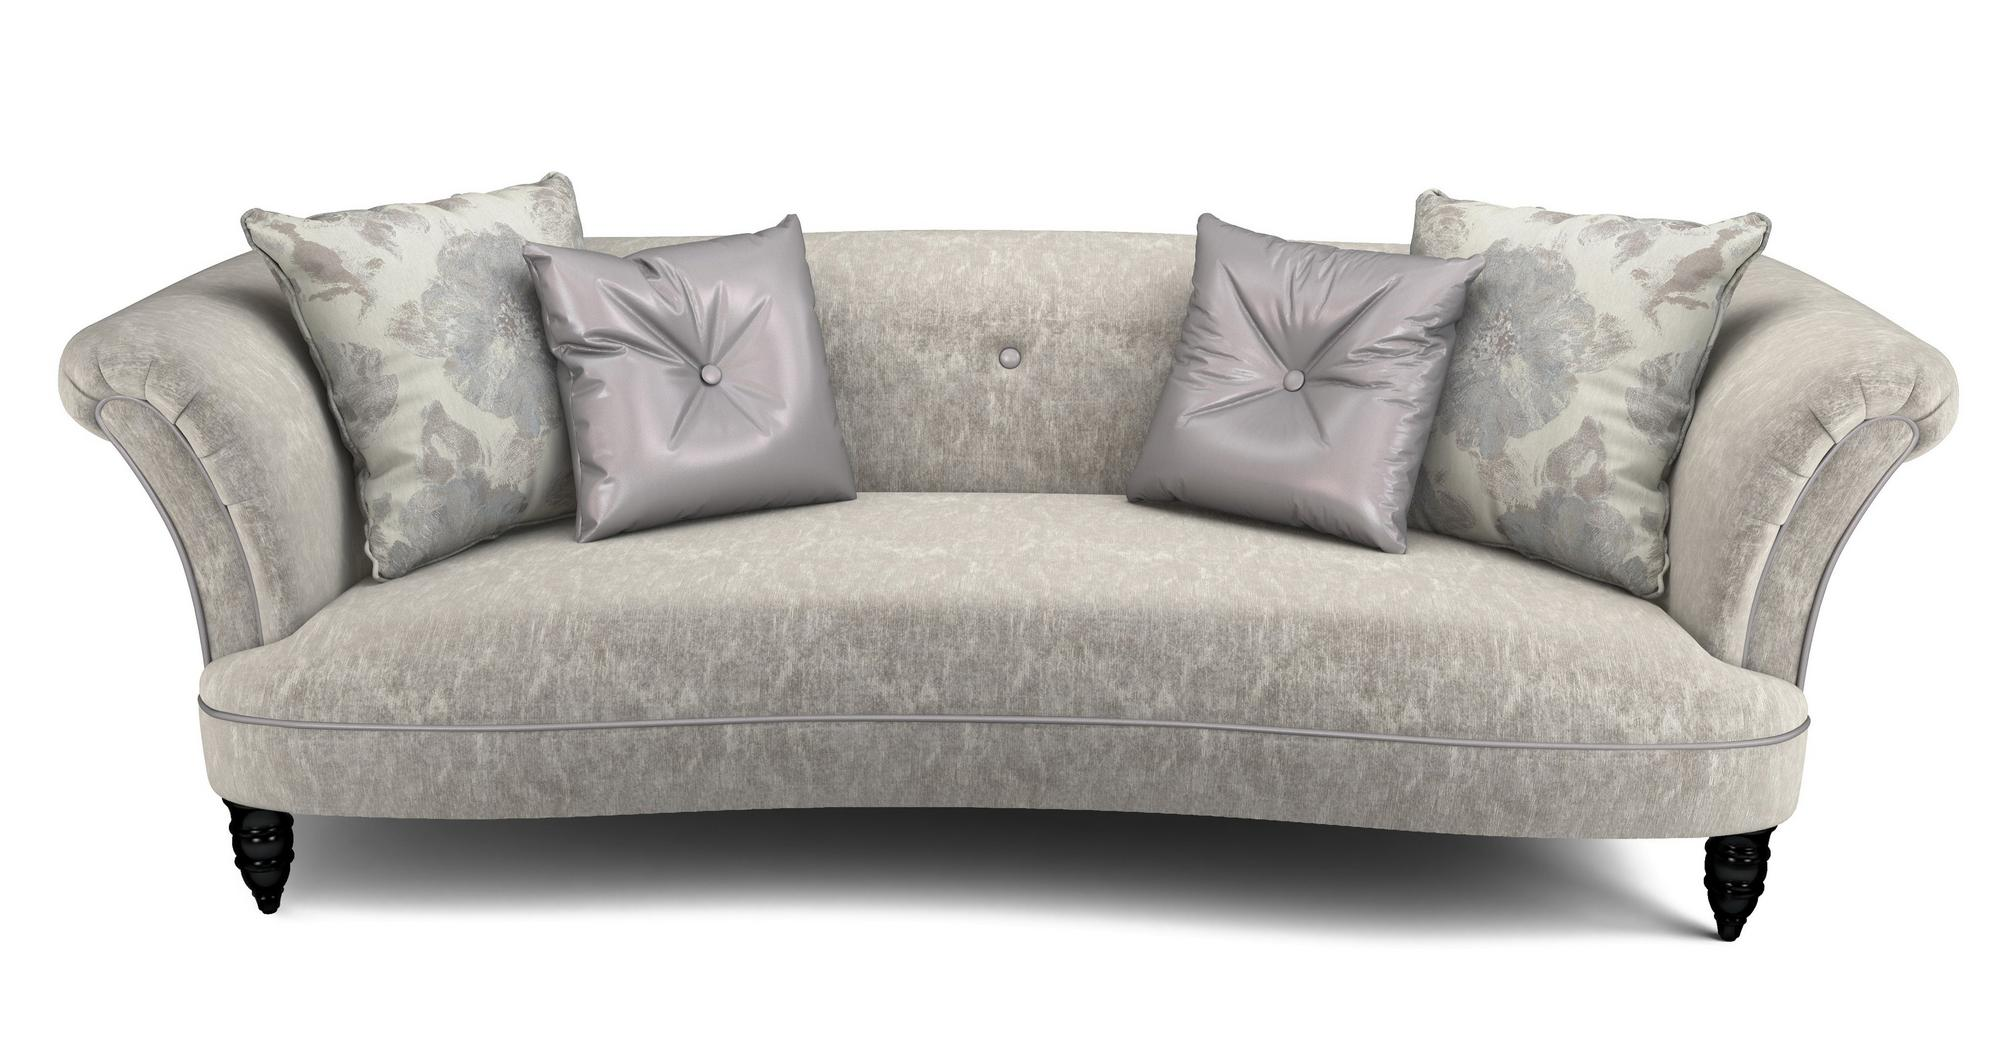 Dfs Concerto Fabric 4 Seater Sofa Cuddler Oval Footstool 58119 Ebay